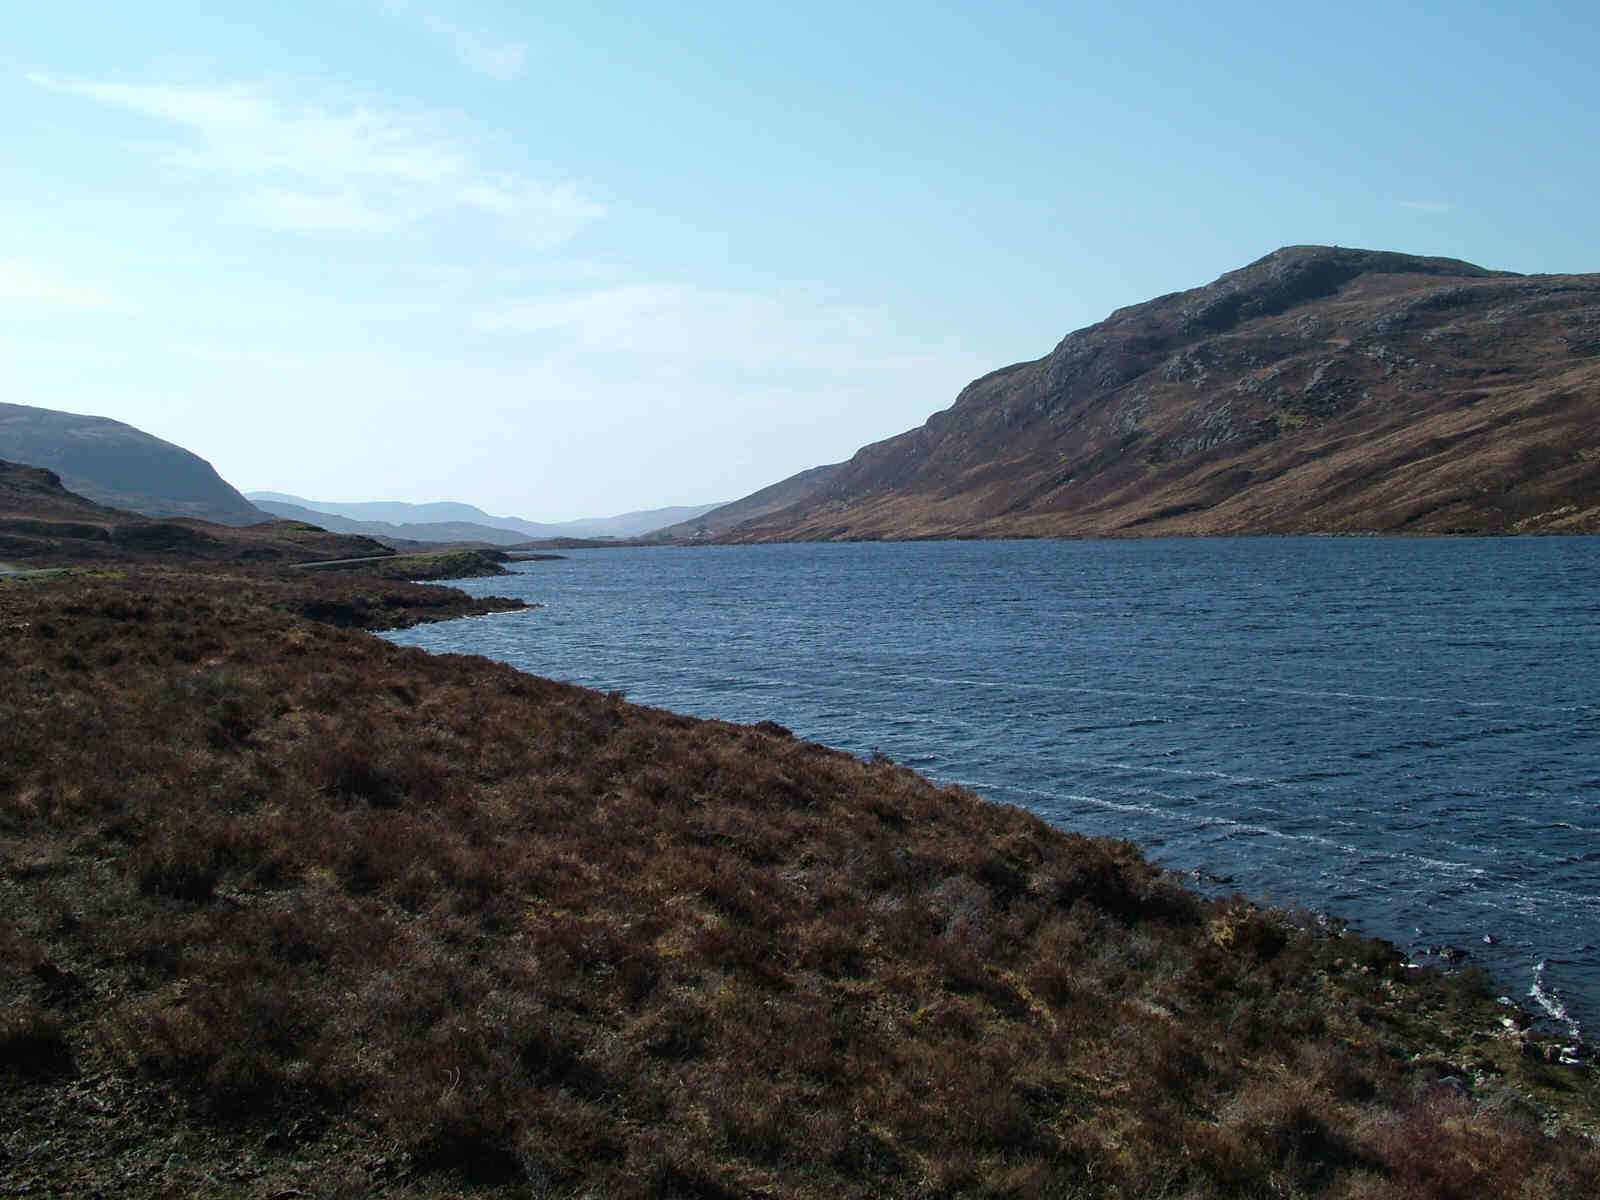 Mullach Mhalasgair at Loch Sgiobacleit just east of Seaforth Head